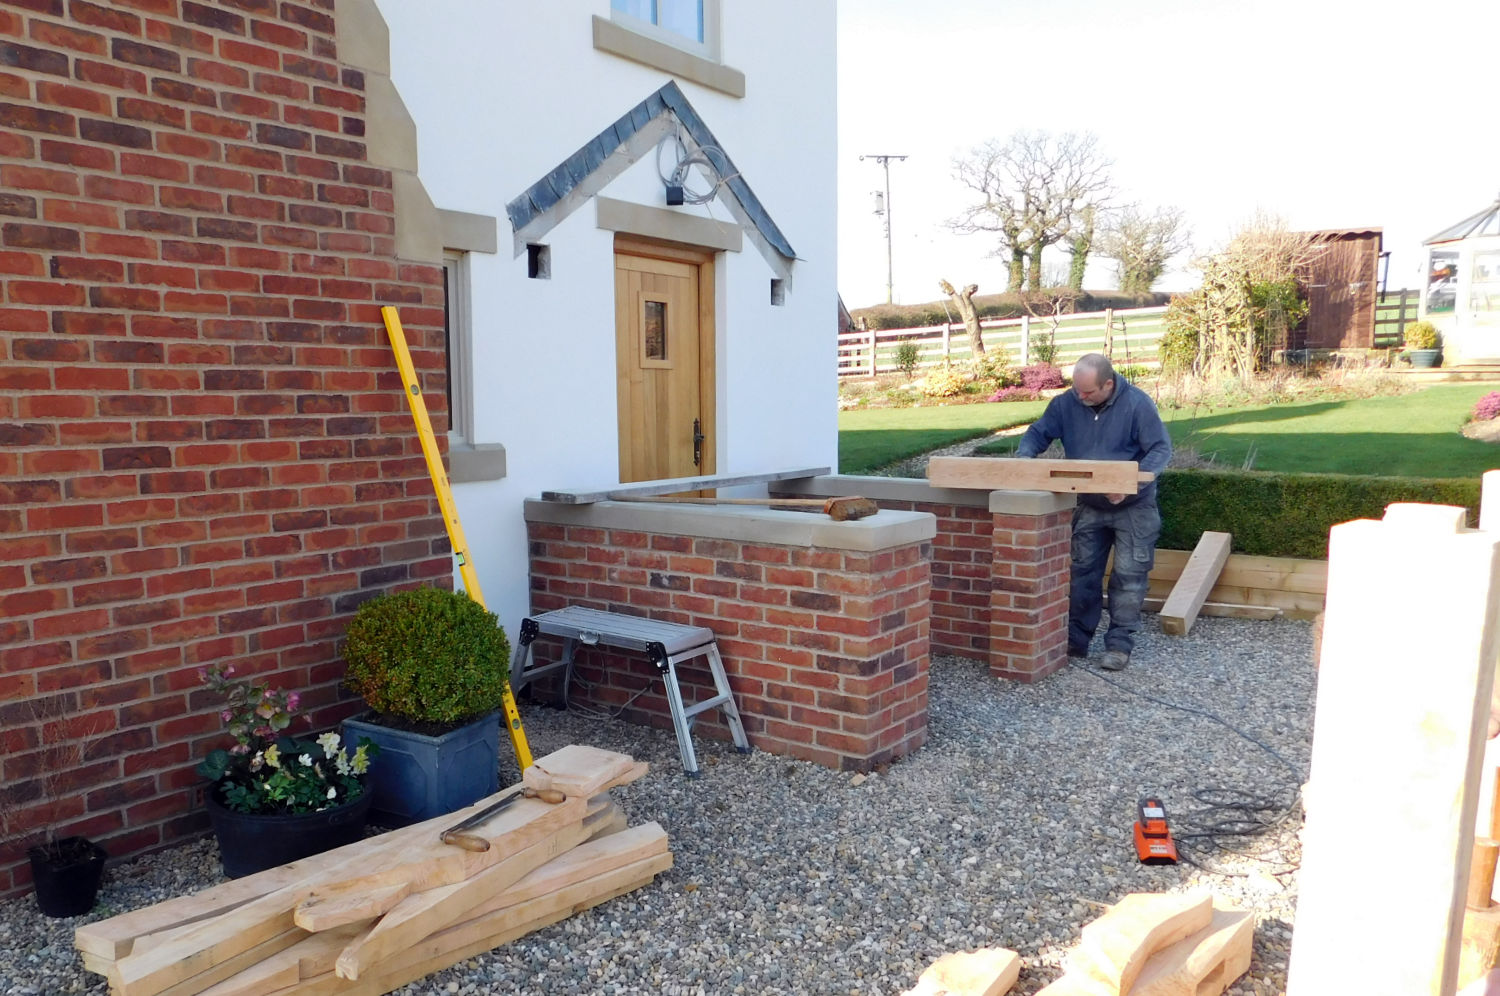 Oak Porch, slate roof, traditional wooden frame, brick and stone work, home improvement, Preston, Lancs, NW